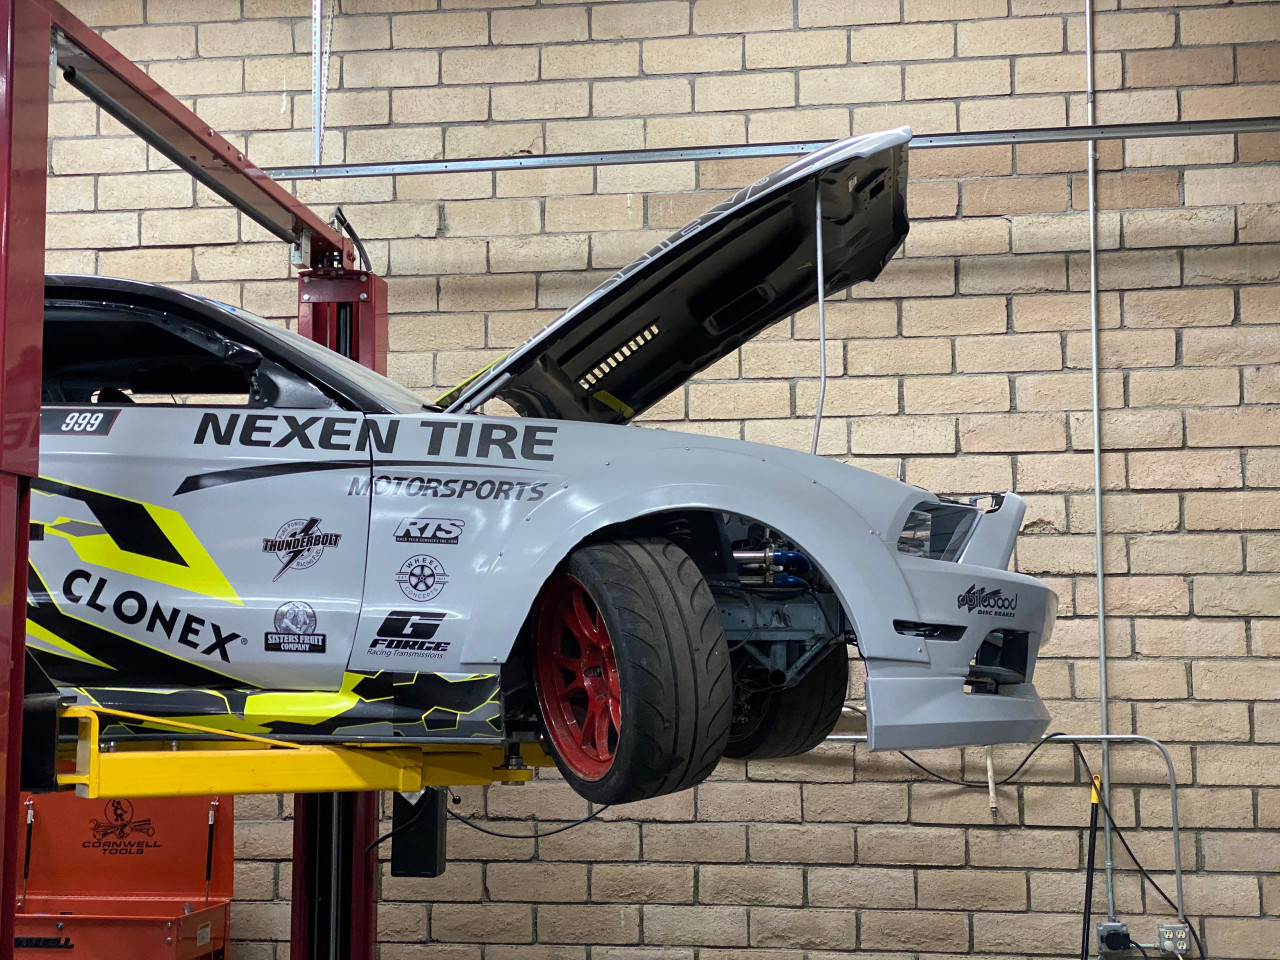 999 Angle Kit for 2005-2014 Ford Mustang  installed on Trenton Beechum's FD Pro 2 Championship winning Mustang.